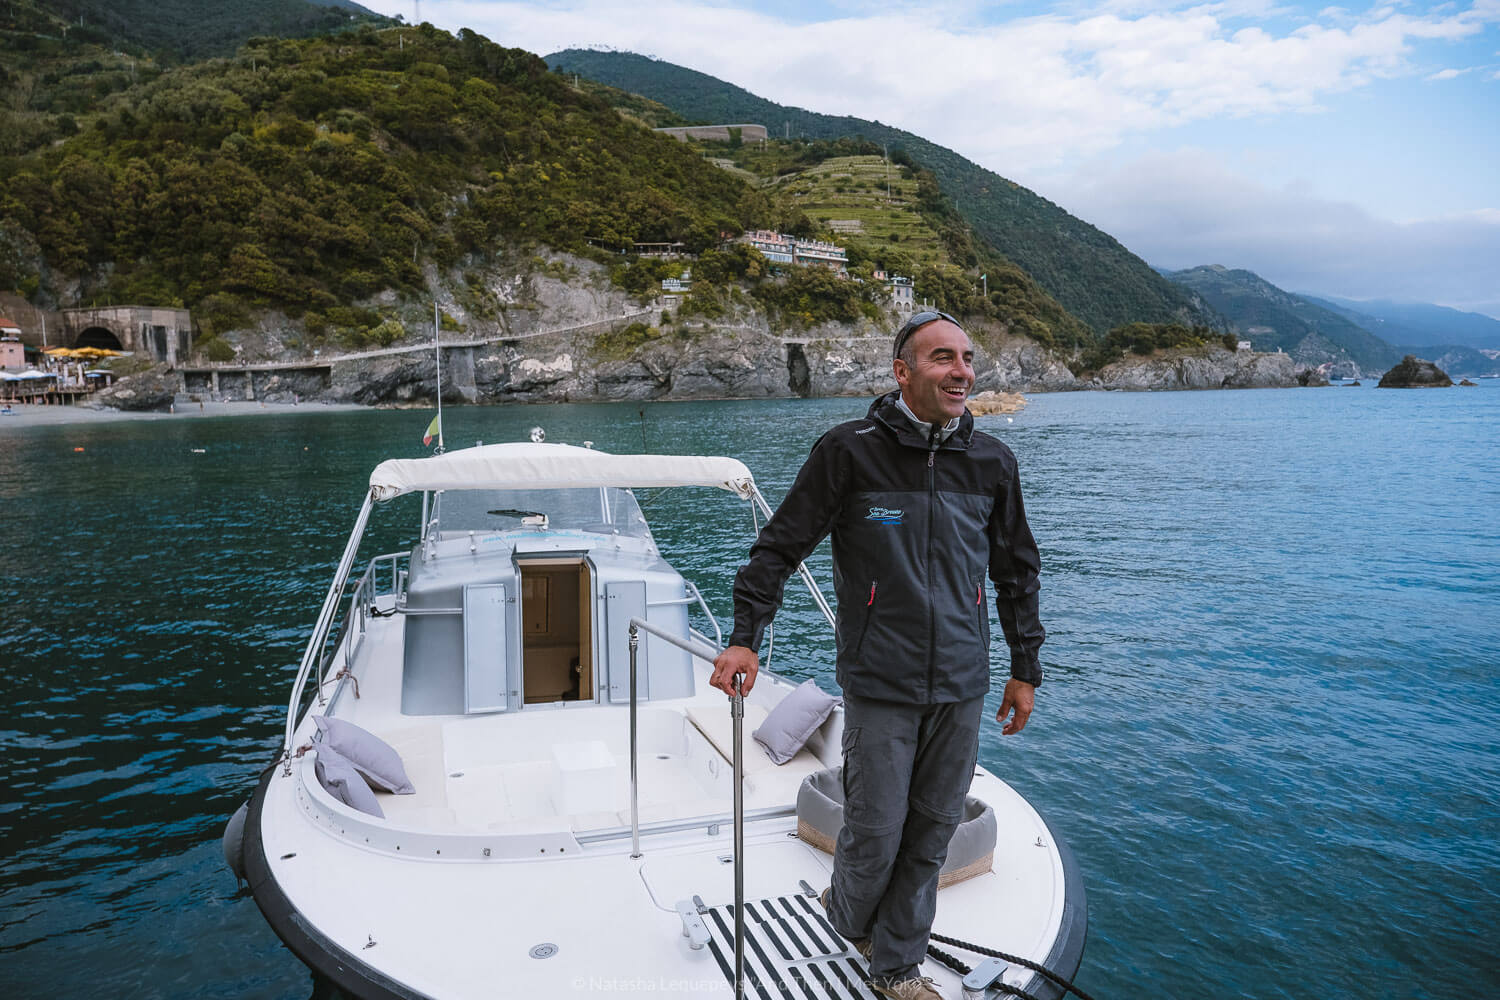 """Matteo of Sea Breeze Boat Tours, Cinque Terre. Travel photography and guide by © Natasha Lequepeys for """"And Then I Met Yoko"""". #cinqueterre #italy #travelphotography"""